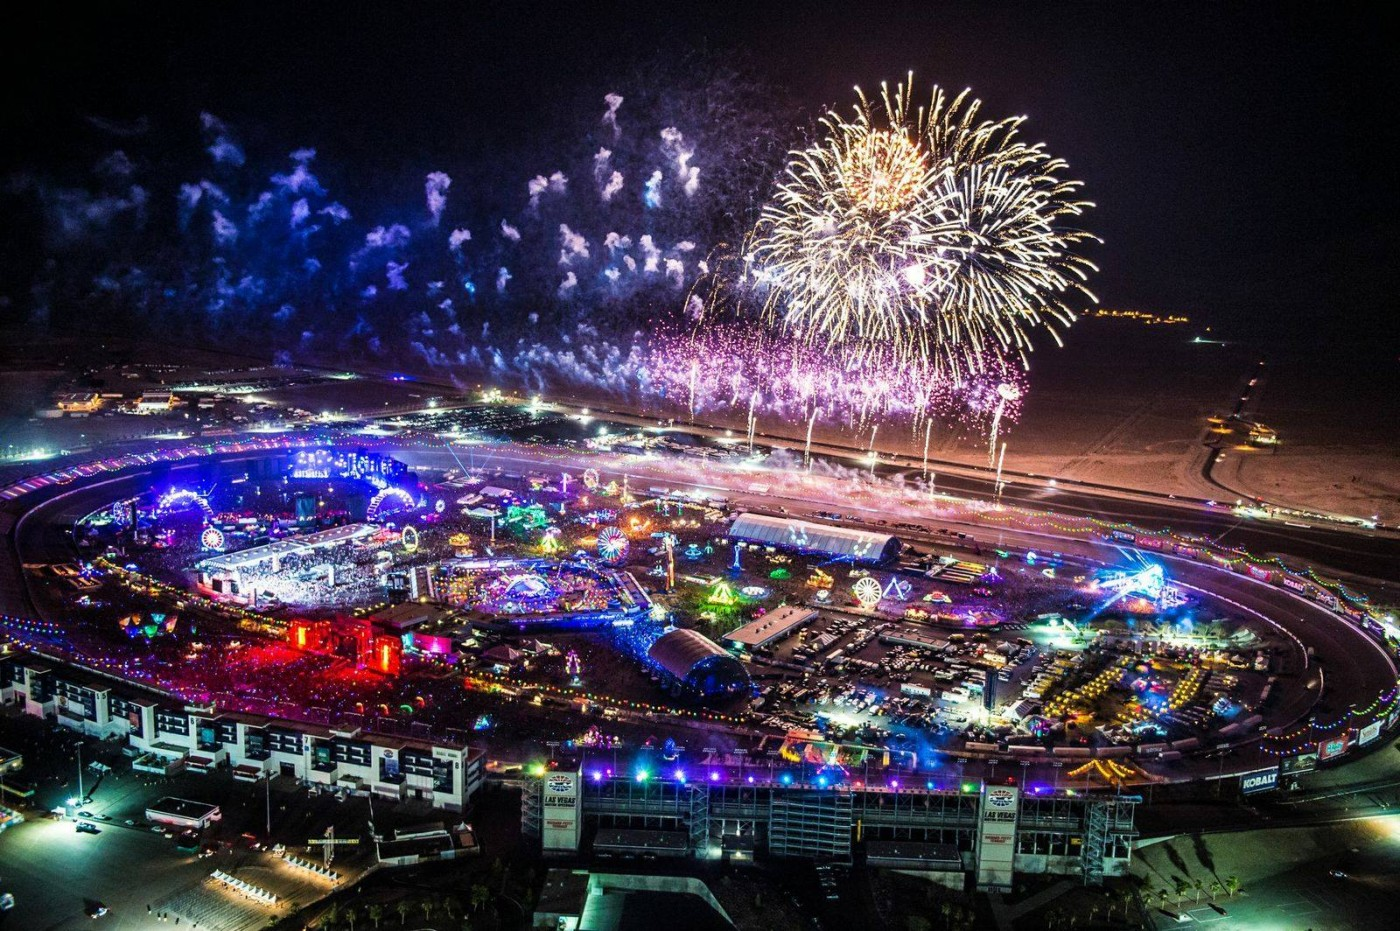 Electric Daisy Carnival brought in dollars